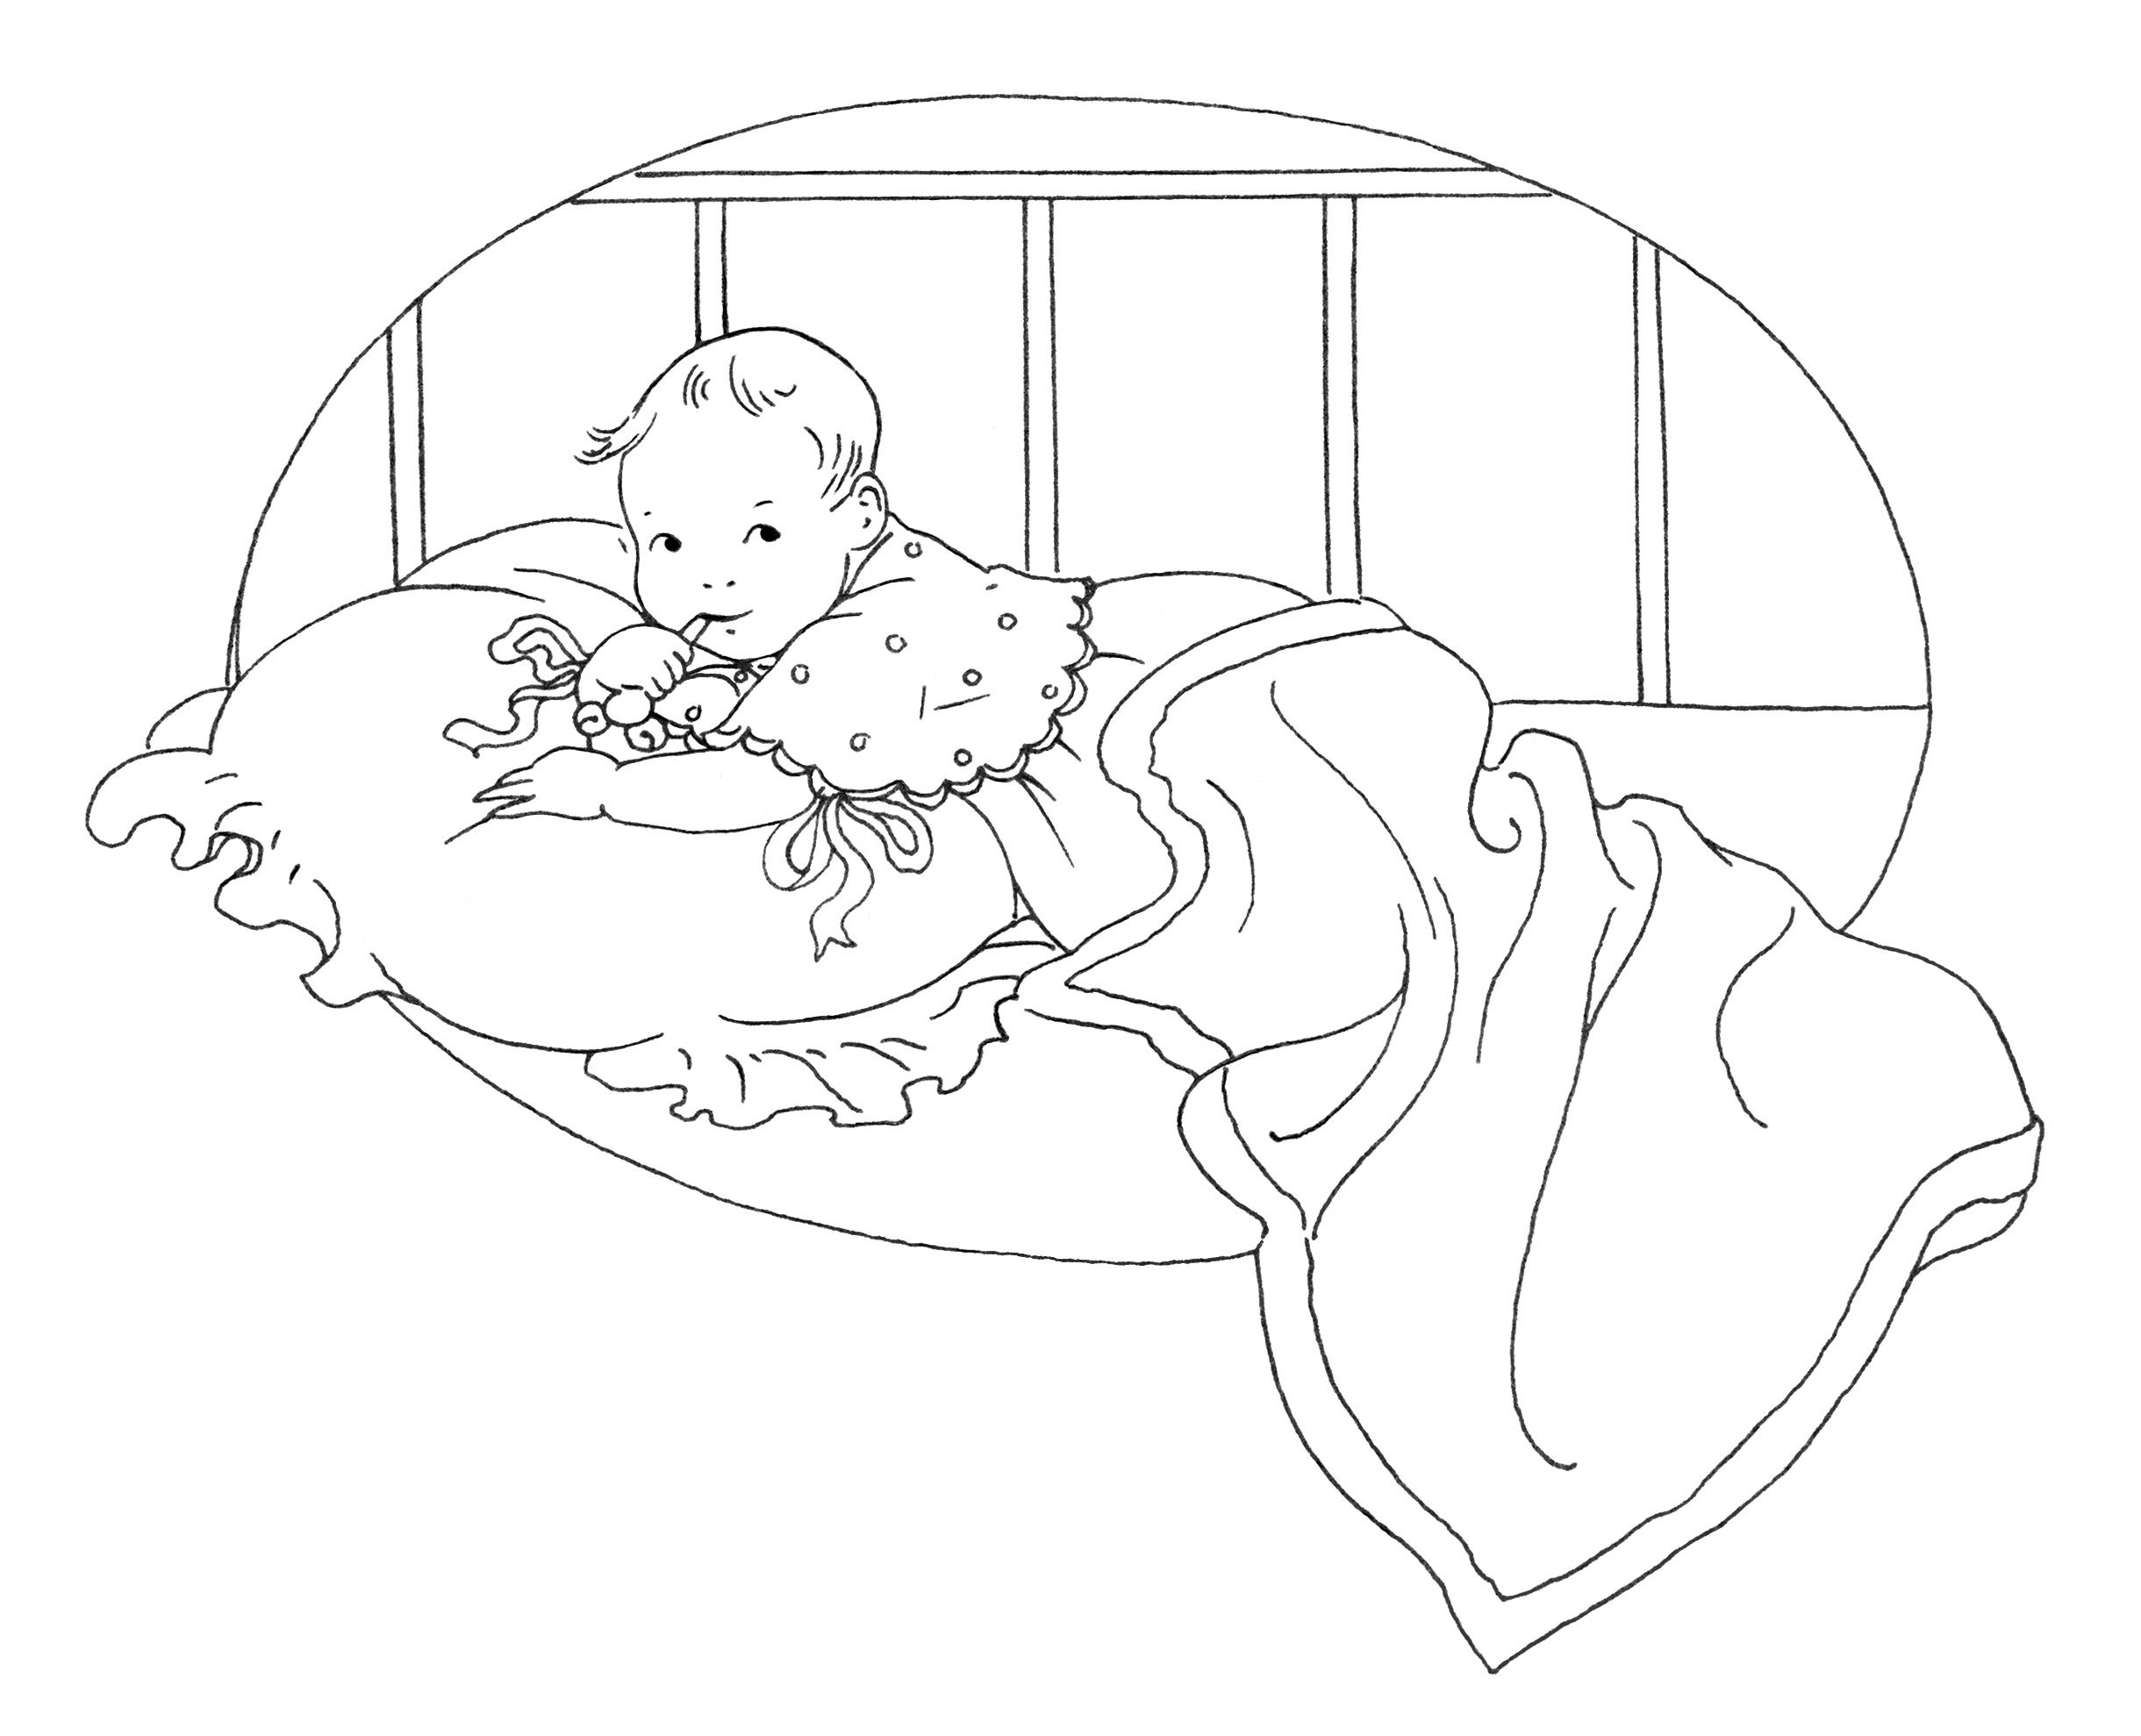 baby in crib drawing at getdrawings com free for personal use baby rh getdrawings com